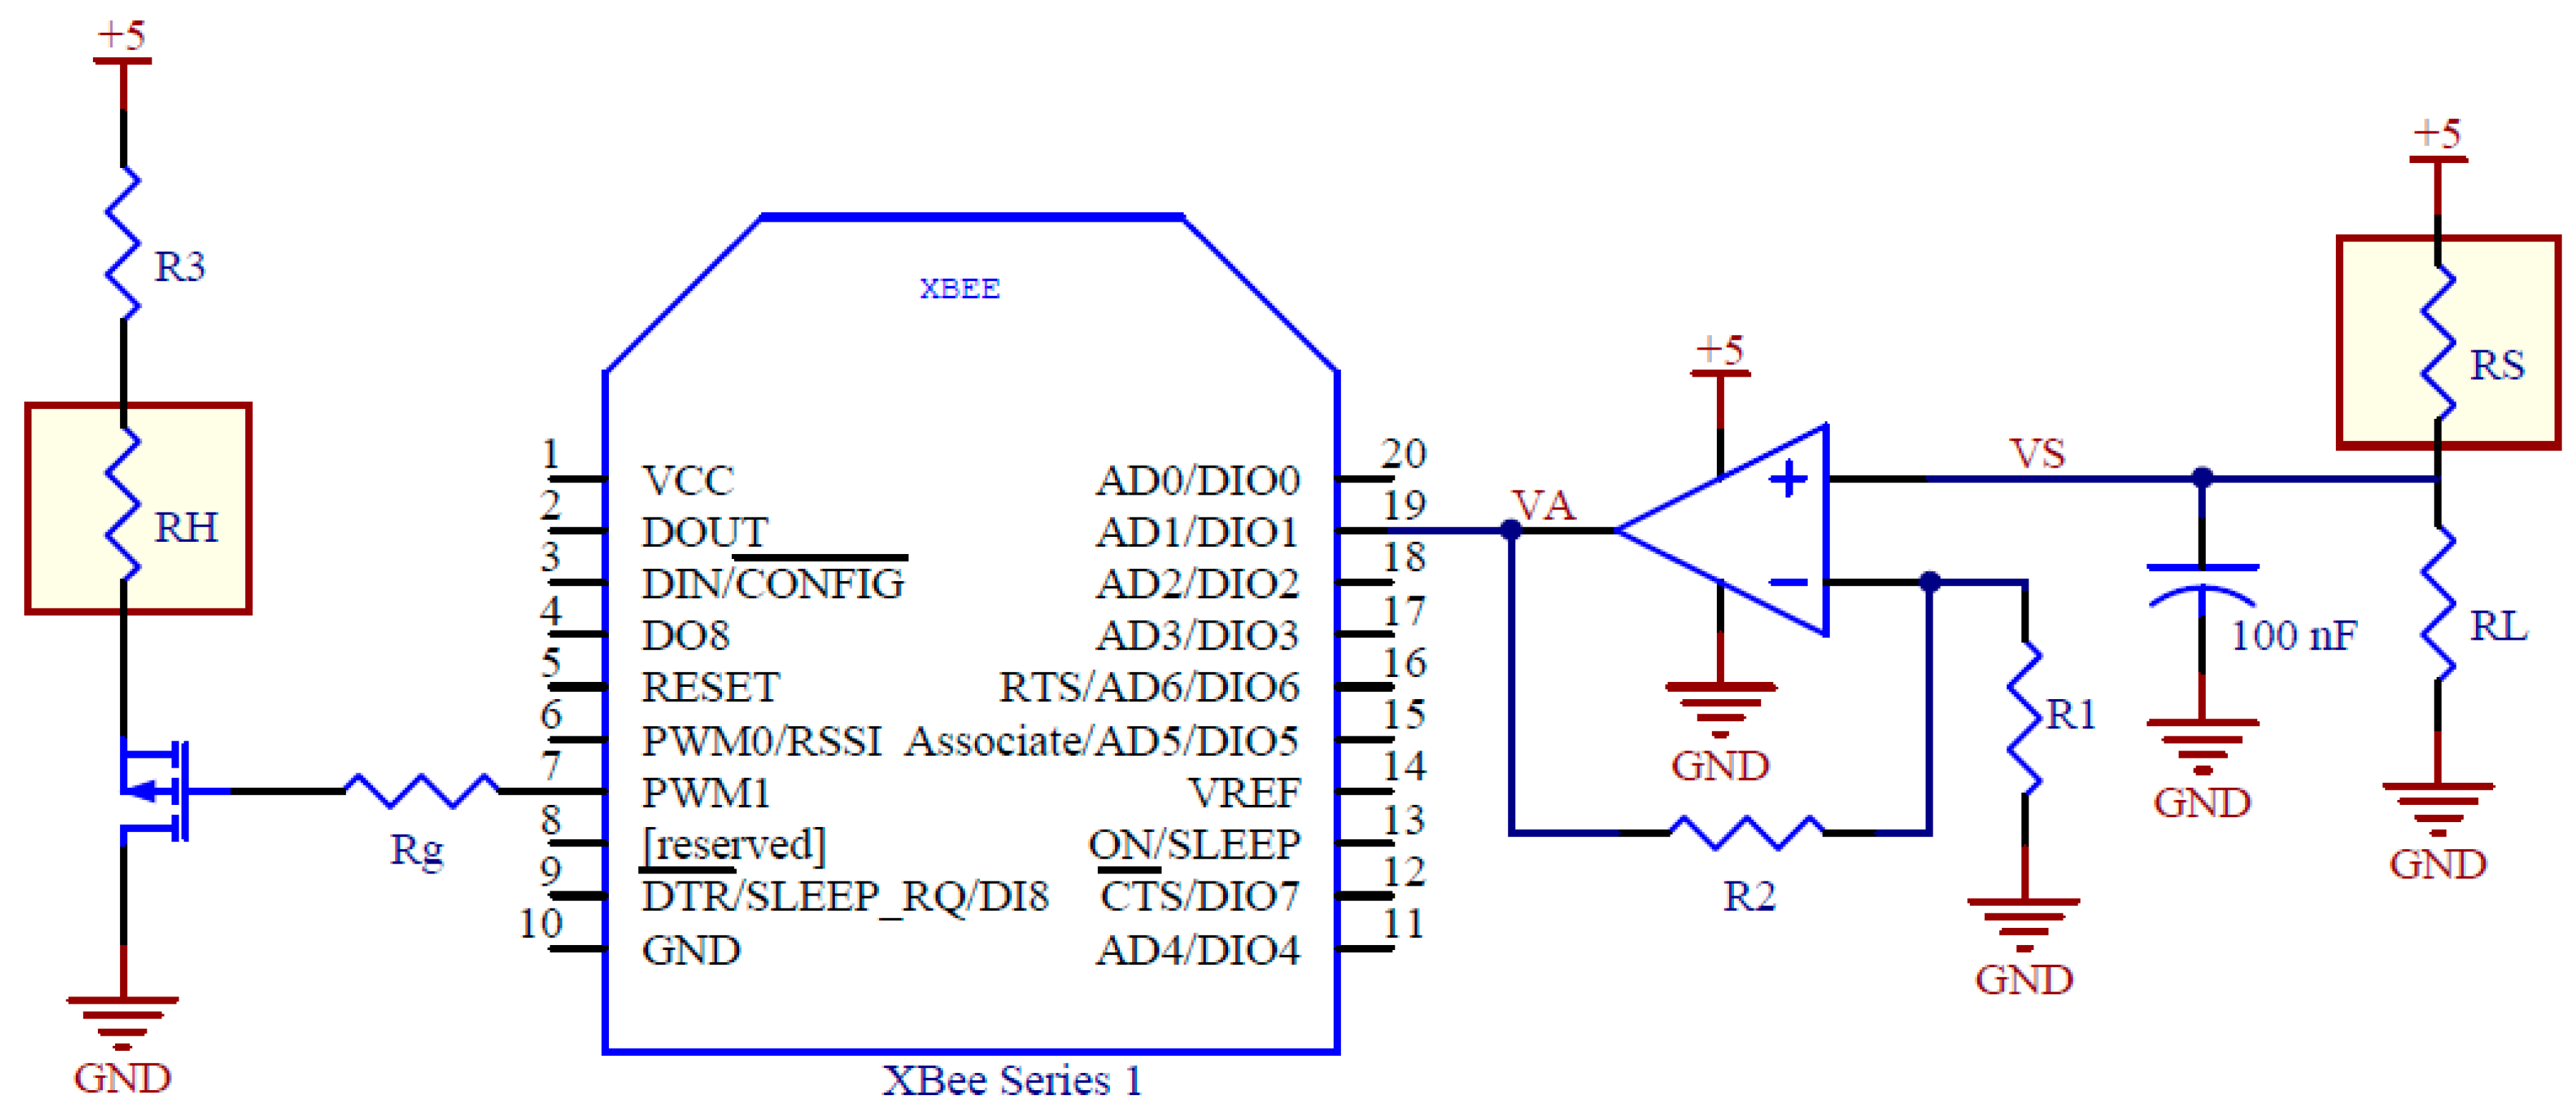 Microchips Mcp73113 Liion Battery Charger Schematic